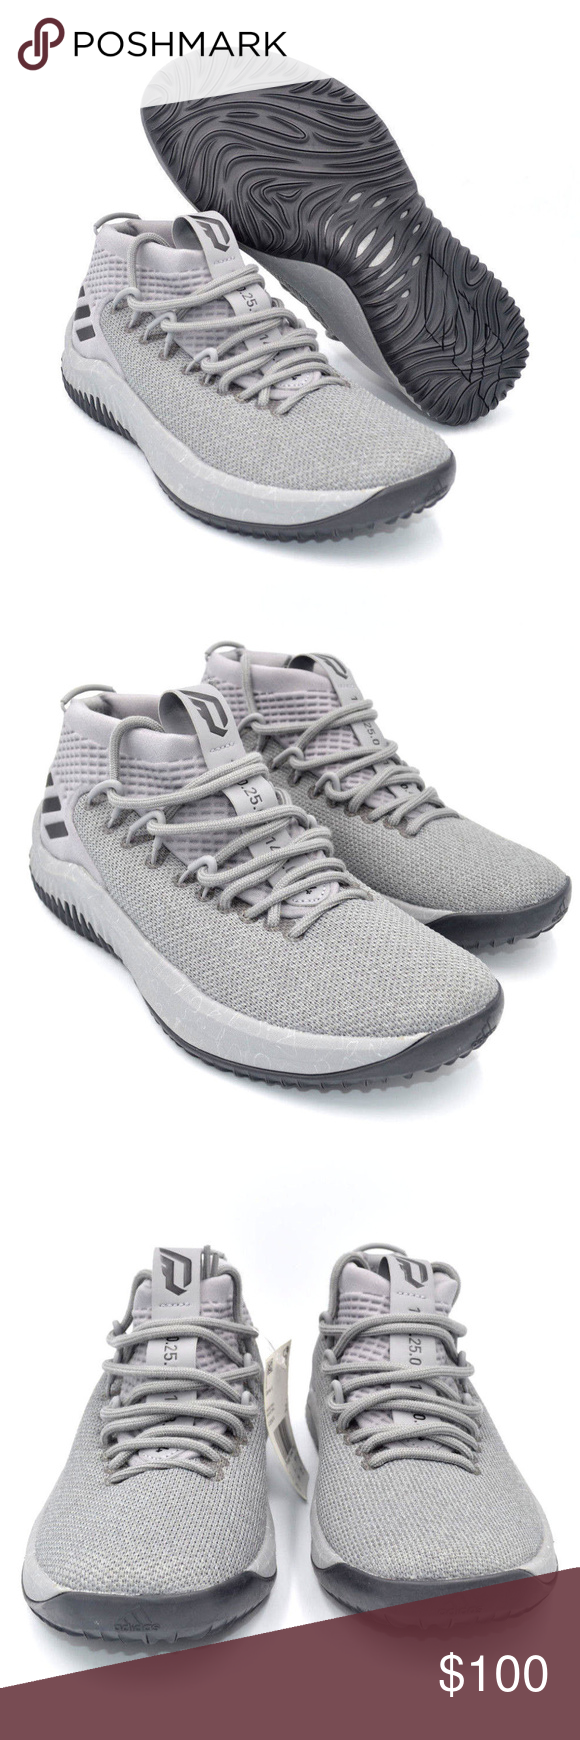 4c57659f4d6774 Adidas Dame 4 Grey Damian Lillard Mens Basketball Color  Grey   Black Style     CQ0474 Condition  New without Box BBB-16 18 adidas Shoes Athletic Shoes